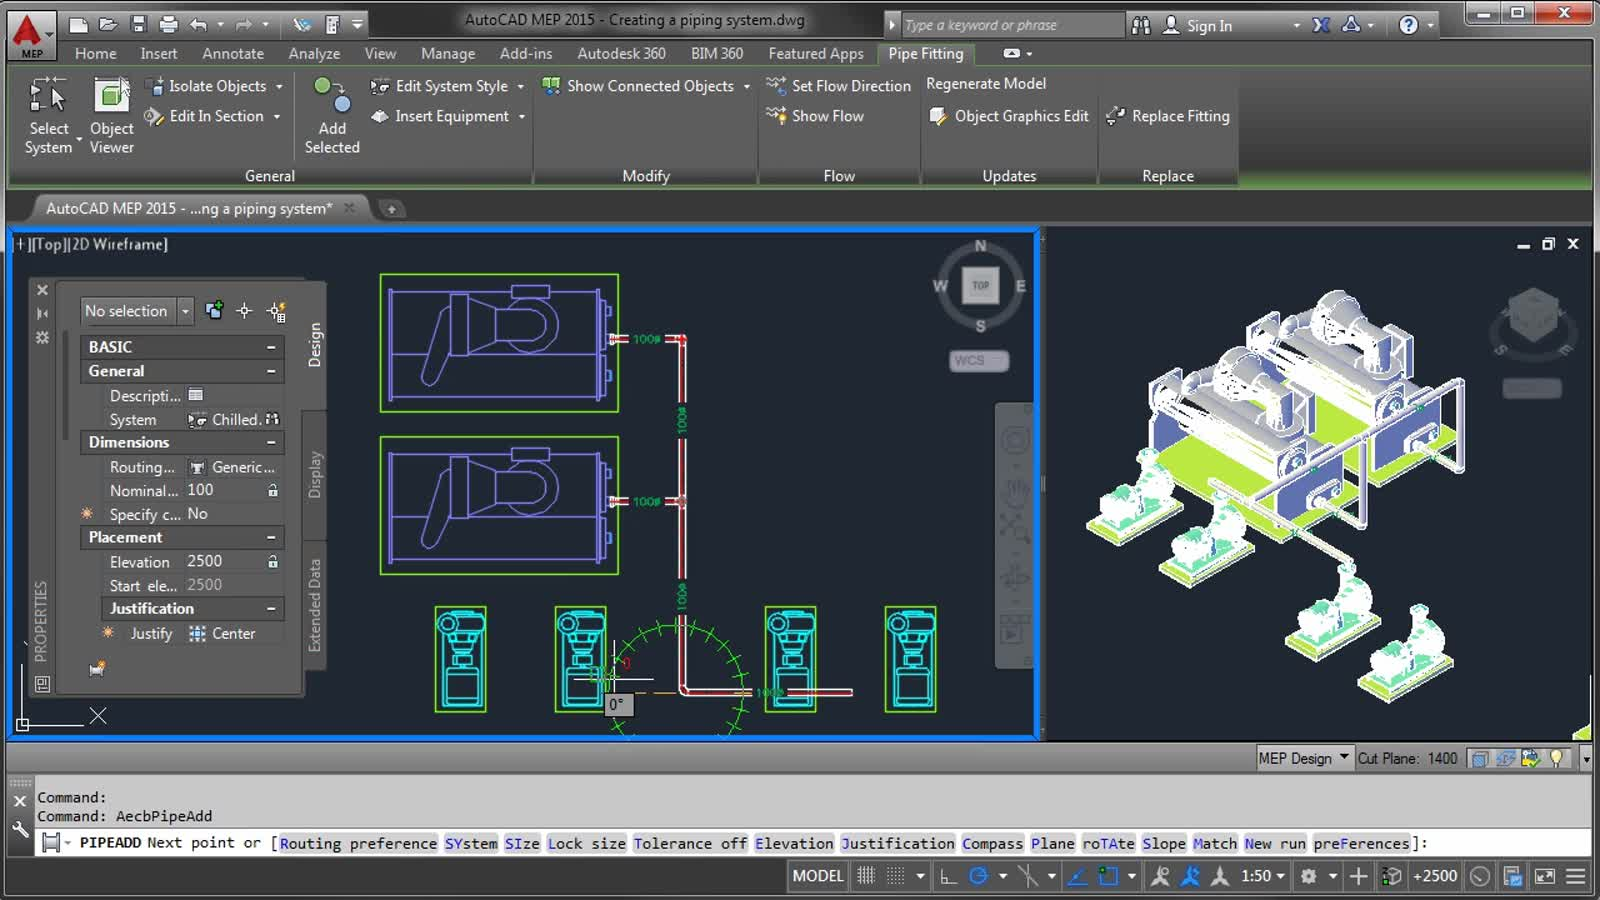 AutoCAD MEP - Creating a Piping System | AutoCAD MEP 2016 | Autodesk  Knowledge Network